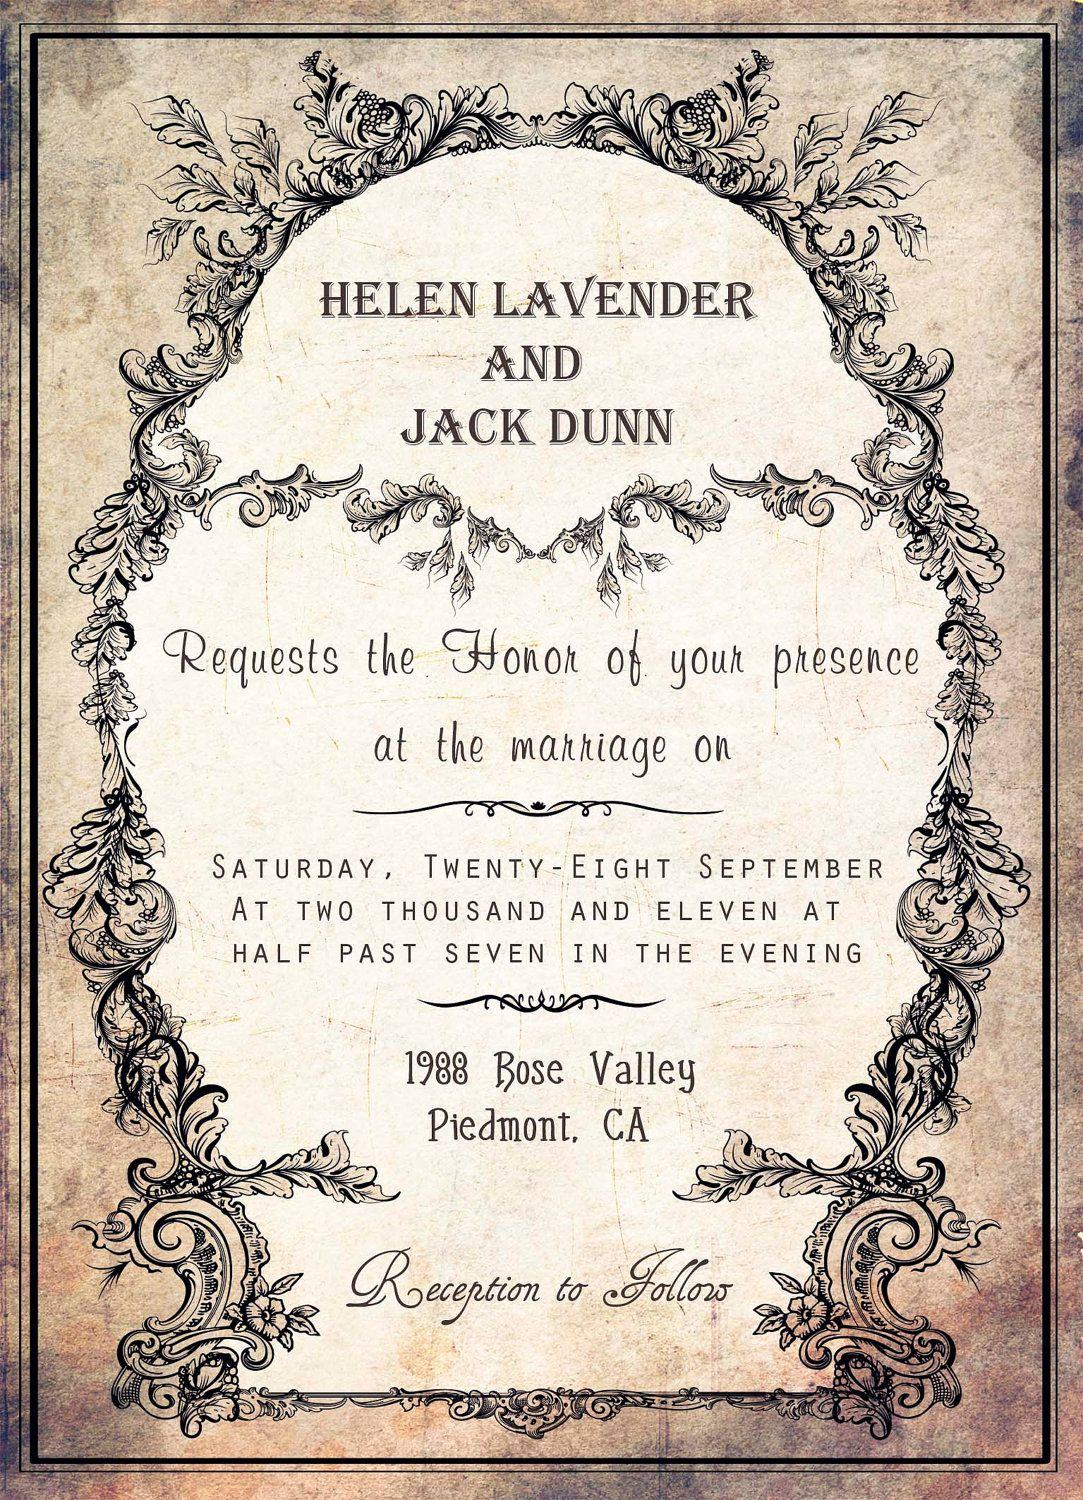 1000 images about Jen Wedding – Free Invitation Designs